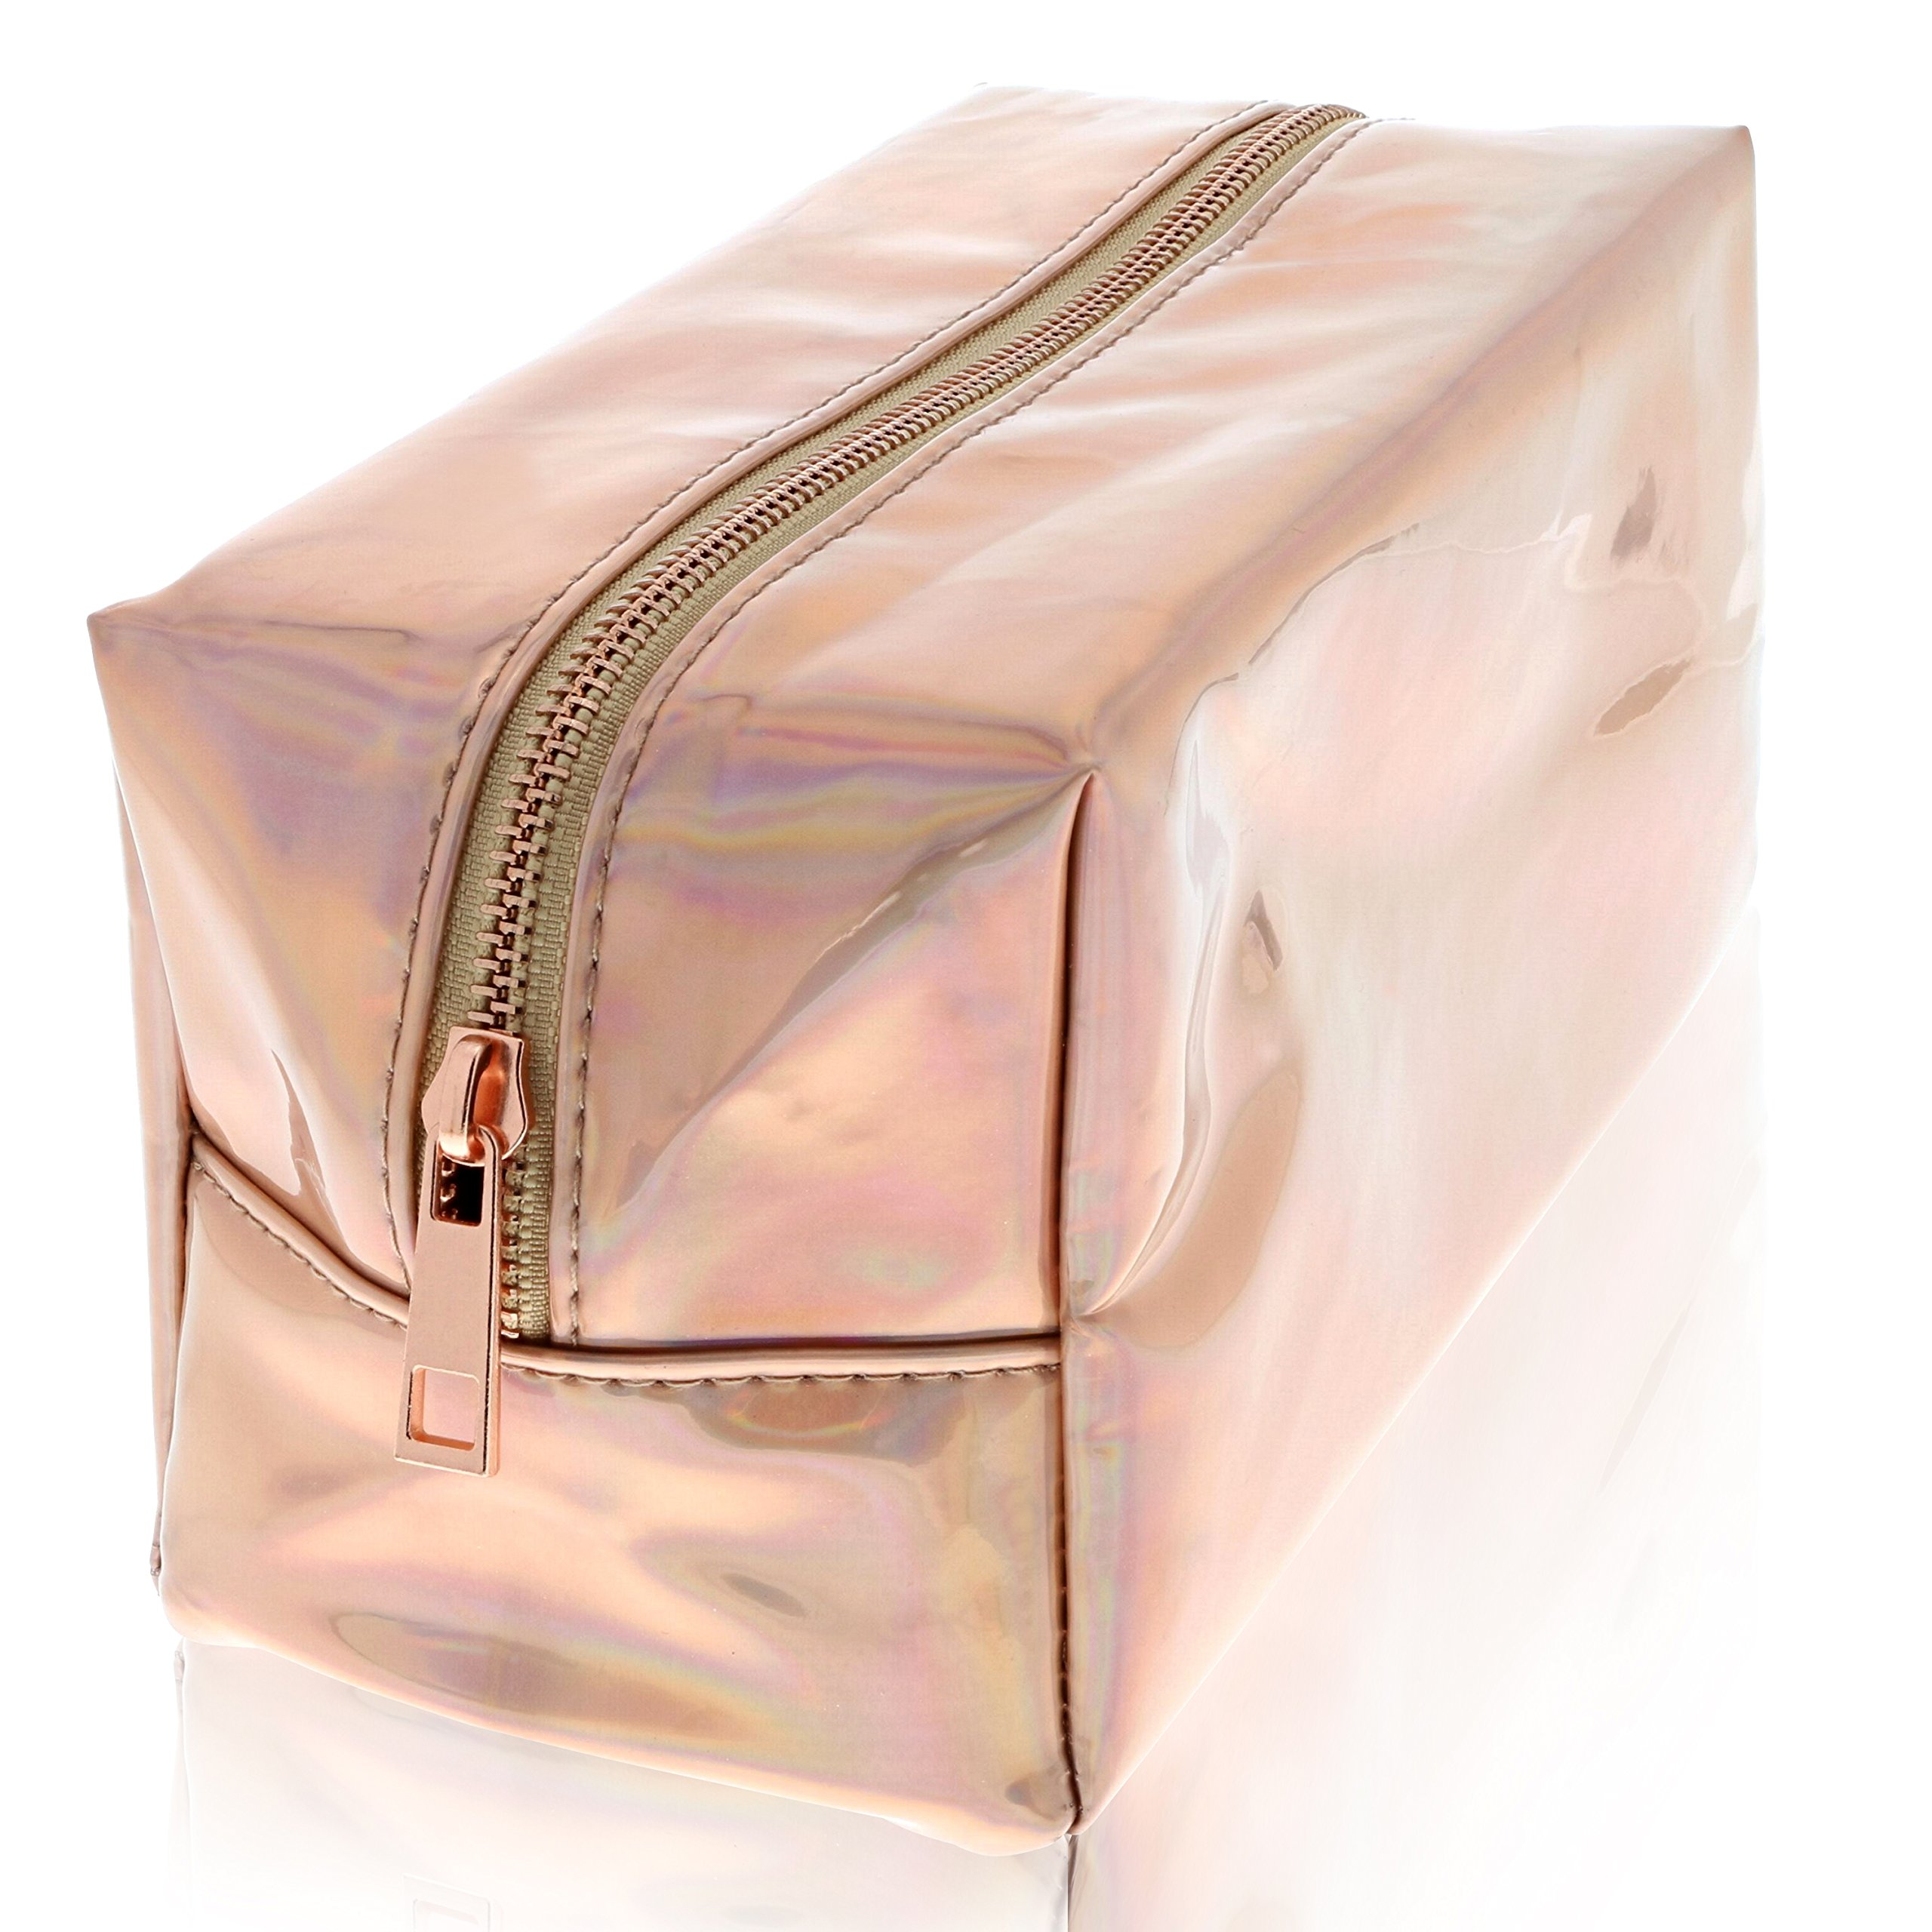 Rose Gold Holographic Makeup Bag - Metallic Cosmetic Make up Case - Cool Travel Bags